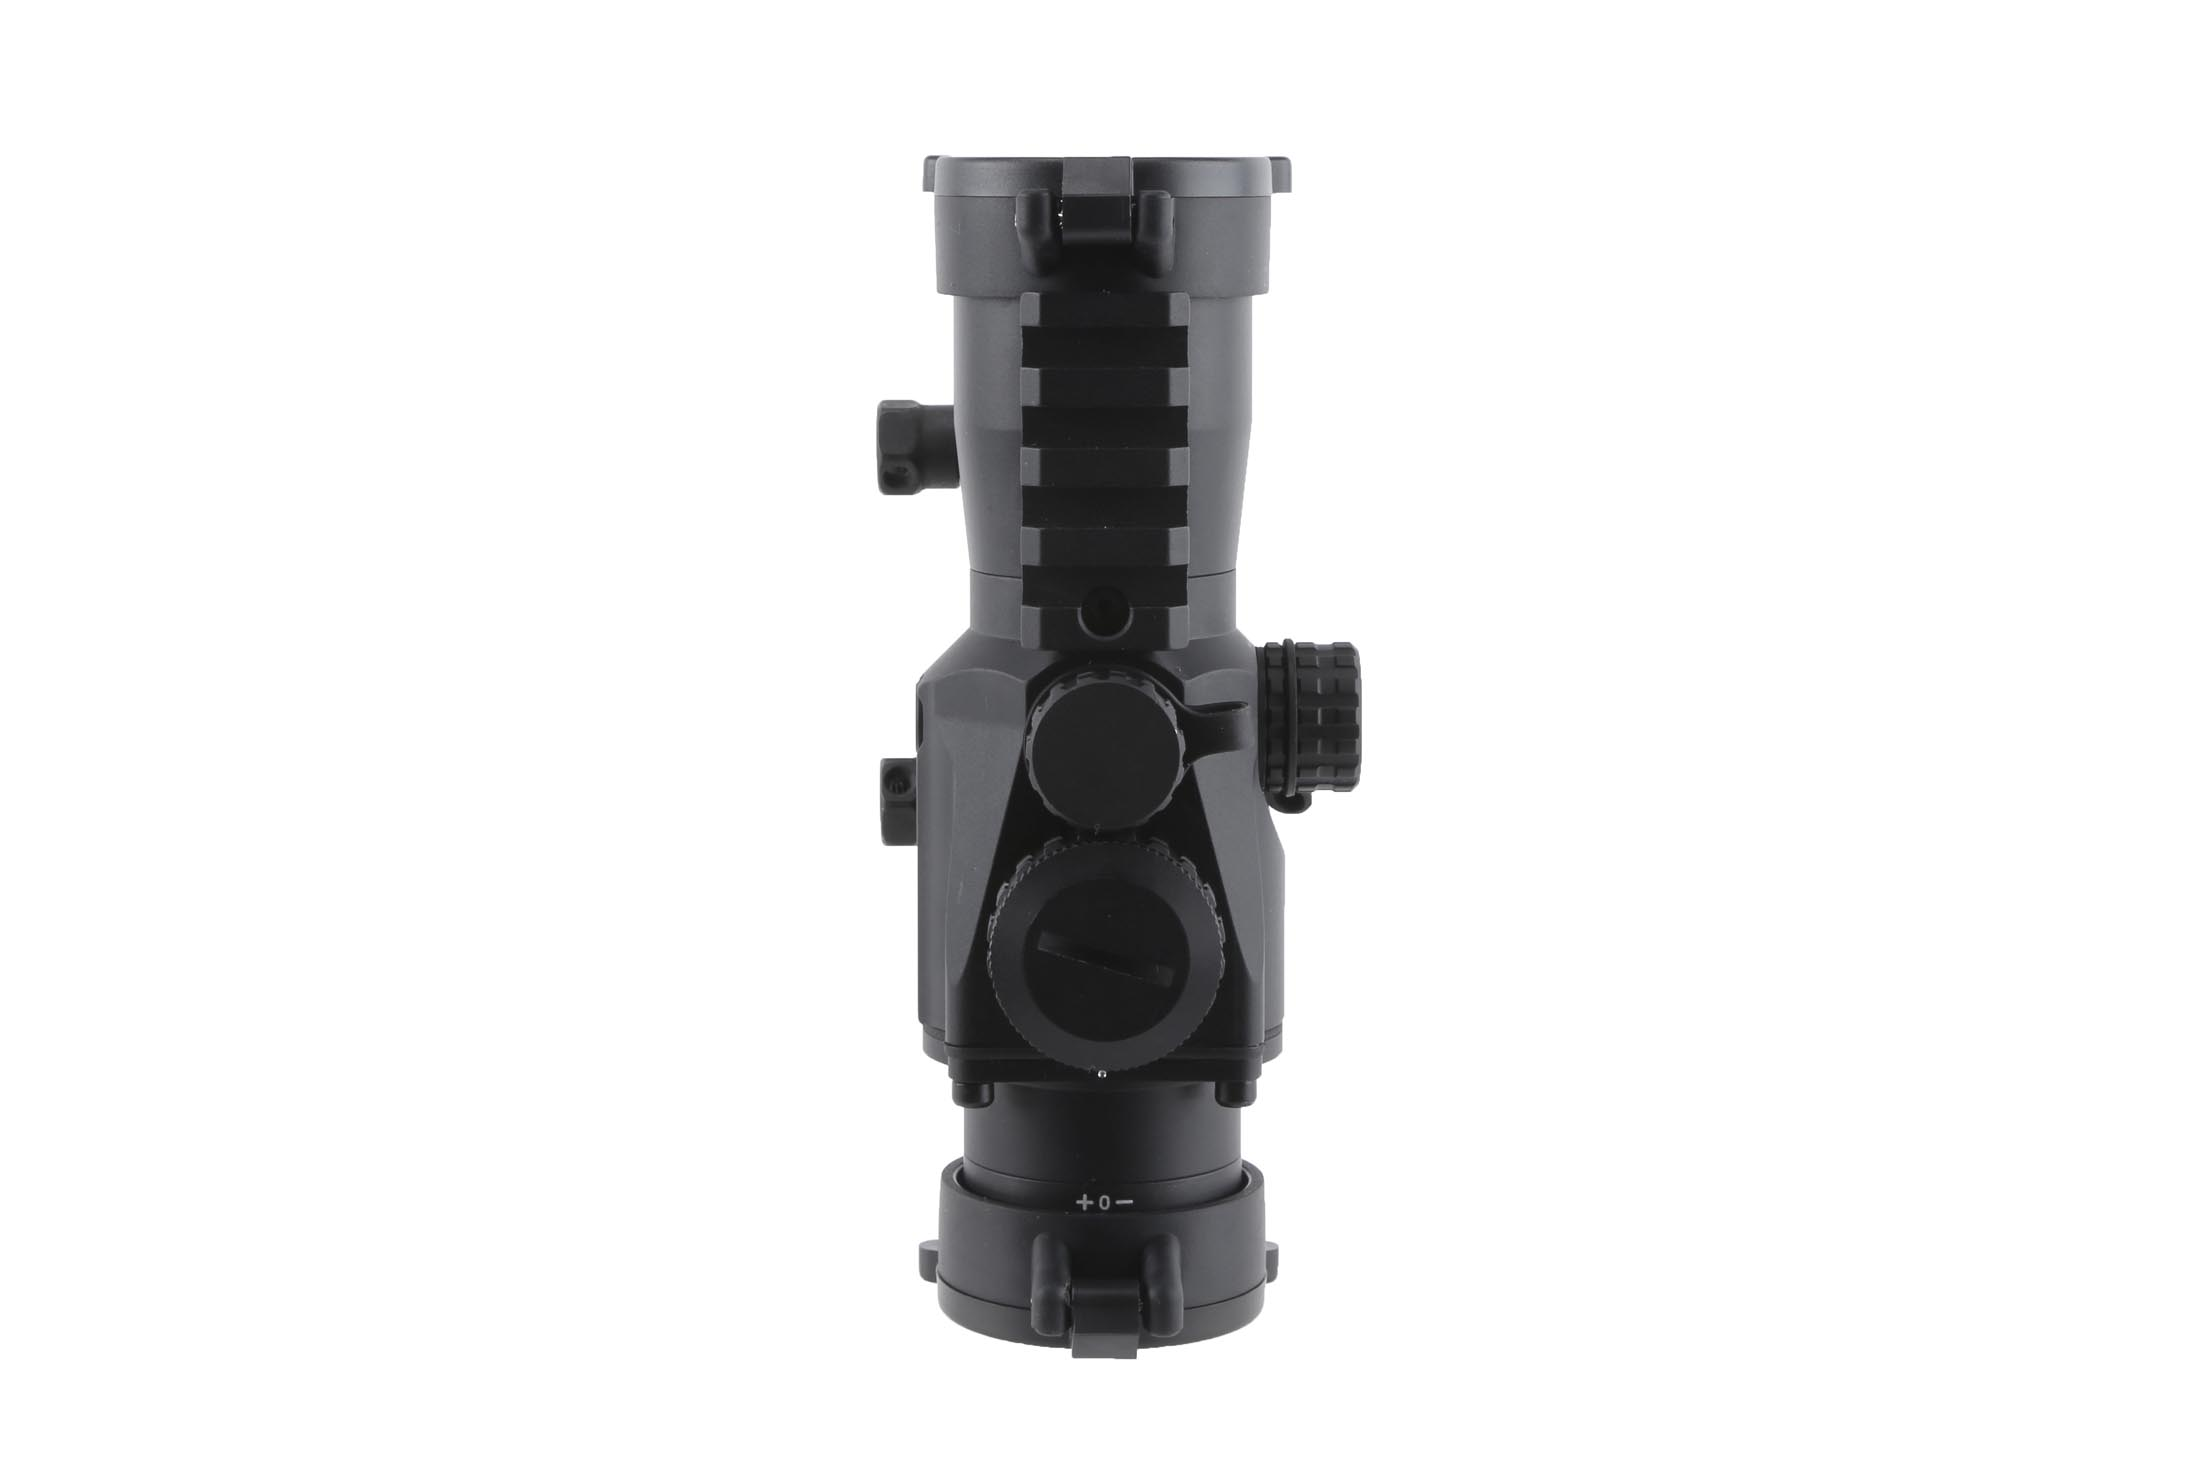 Primary Arms 3X Compact Prism Scope with the Patented ACSS 5.56 Reticle